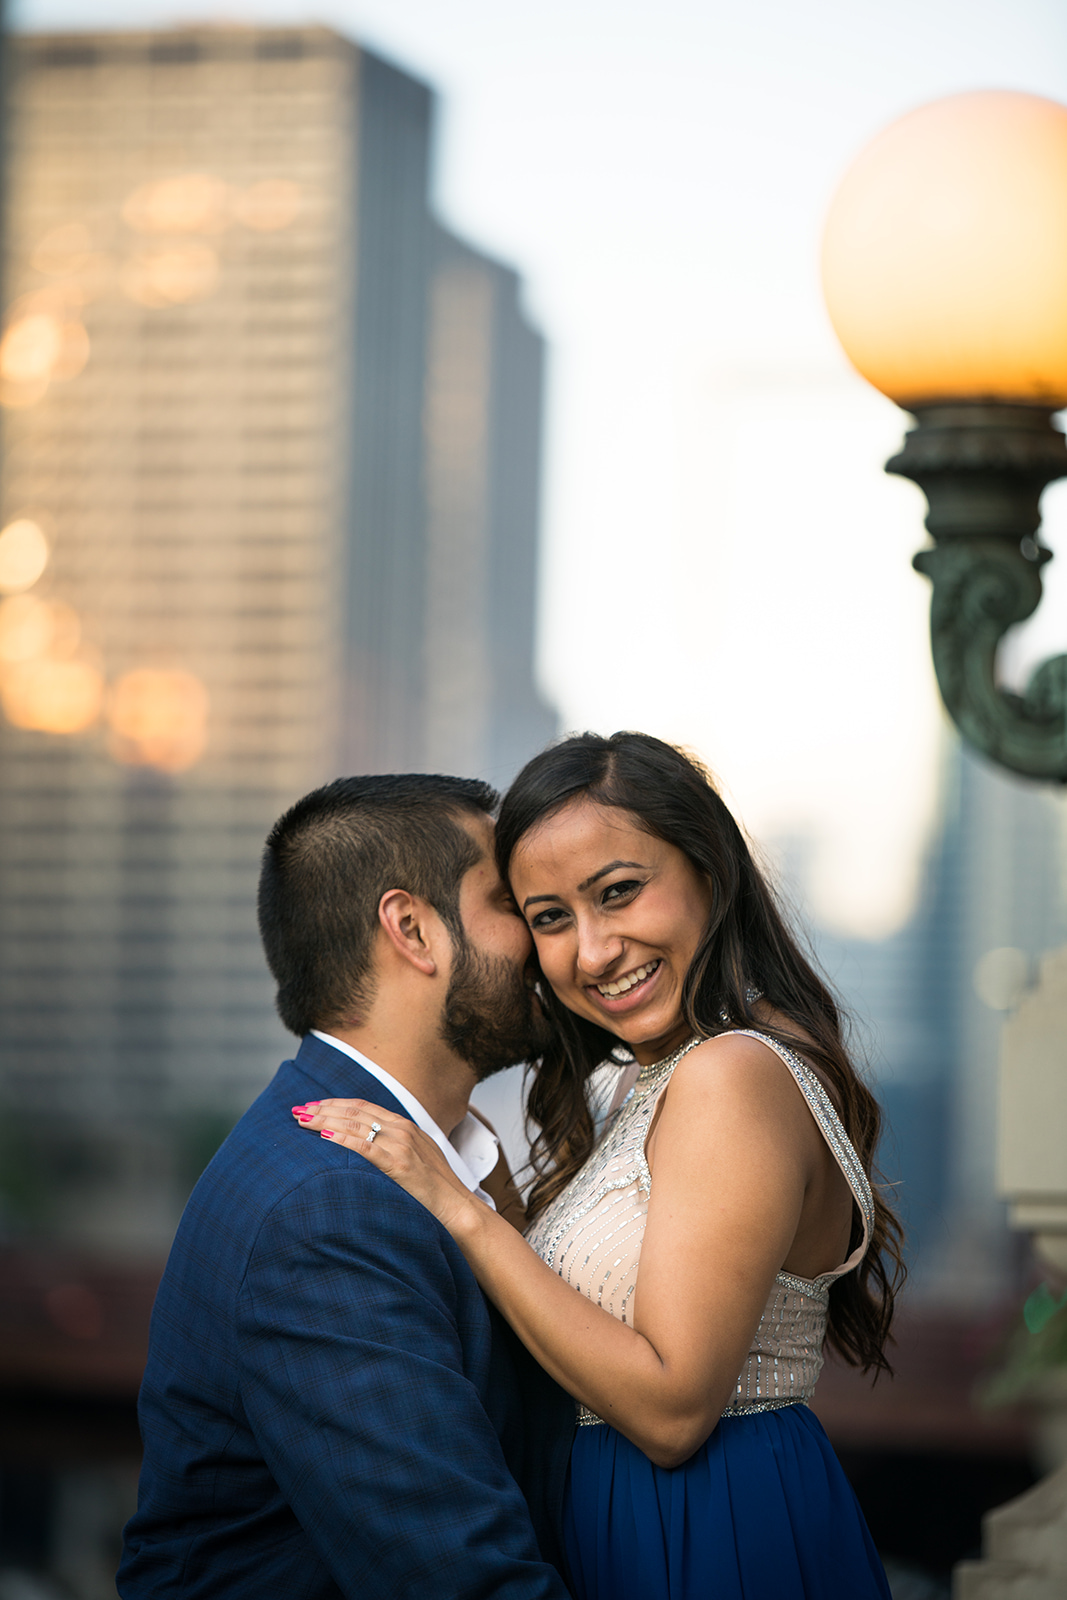 Le Cape Weddings - Chicago Engagement Session - Rina and Manan -58.jpg